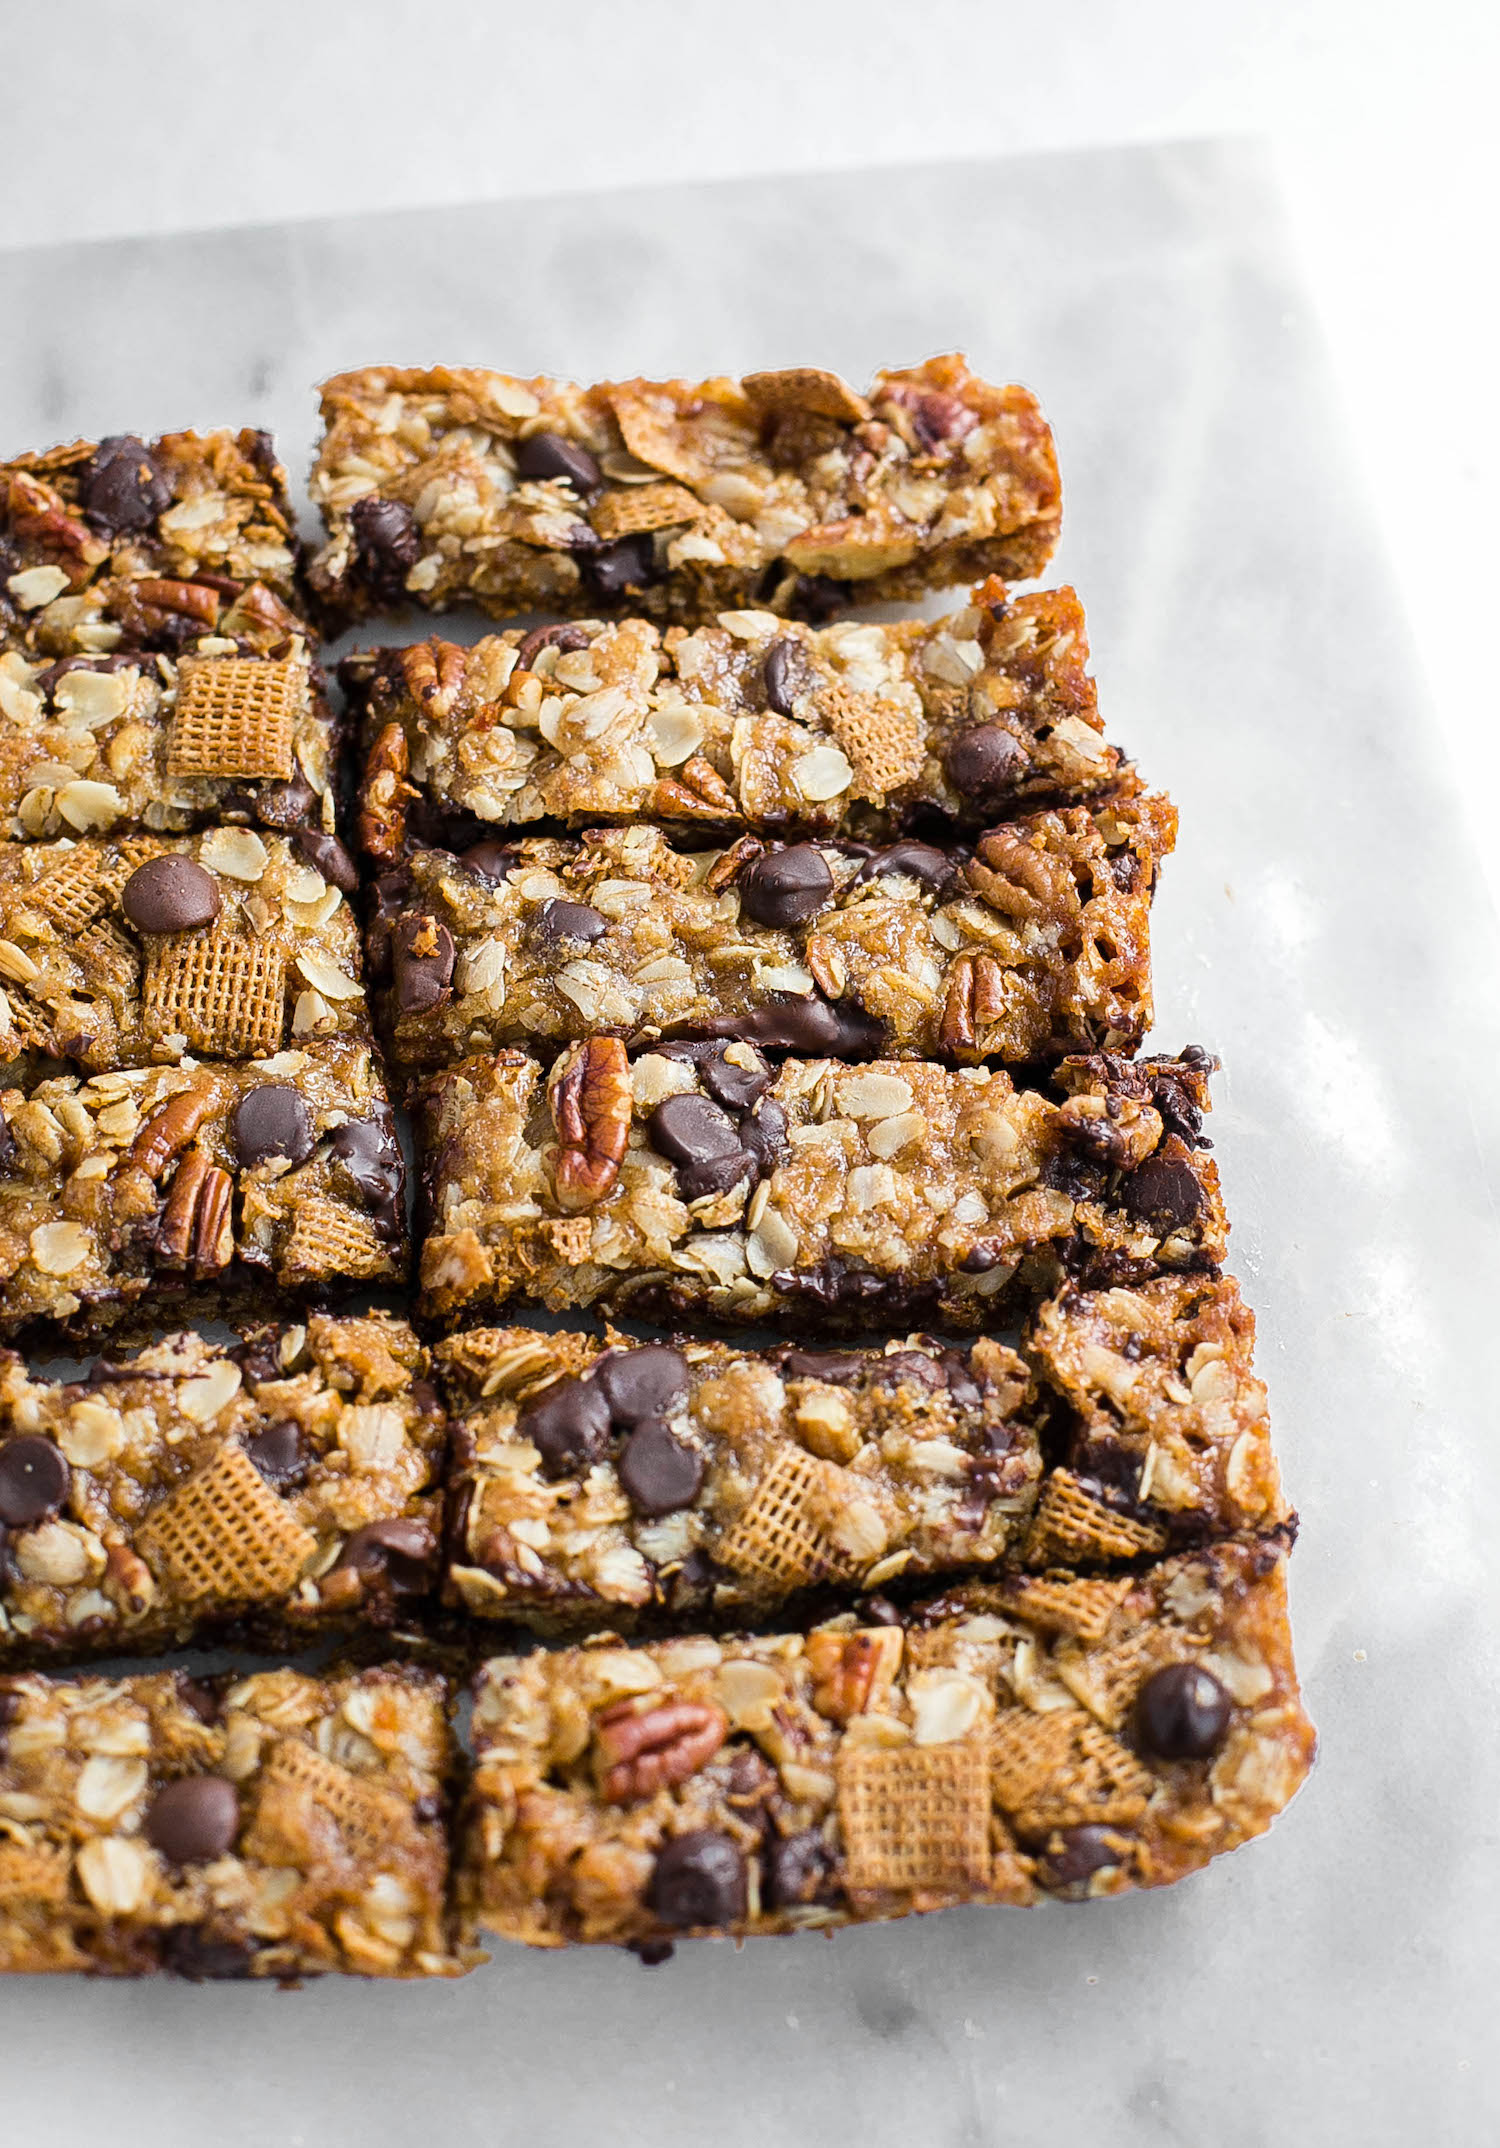 Chewy Granola Bars: whole-wheat granola bars chock-full of oats, chocolate chips, and nuts. Super chewy and easy! | TrufflesandTrends.com